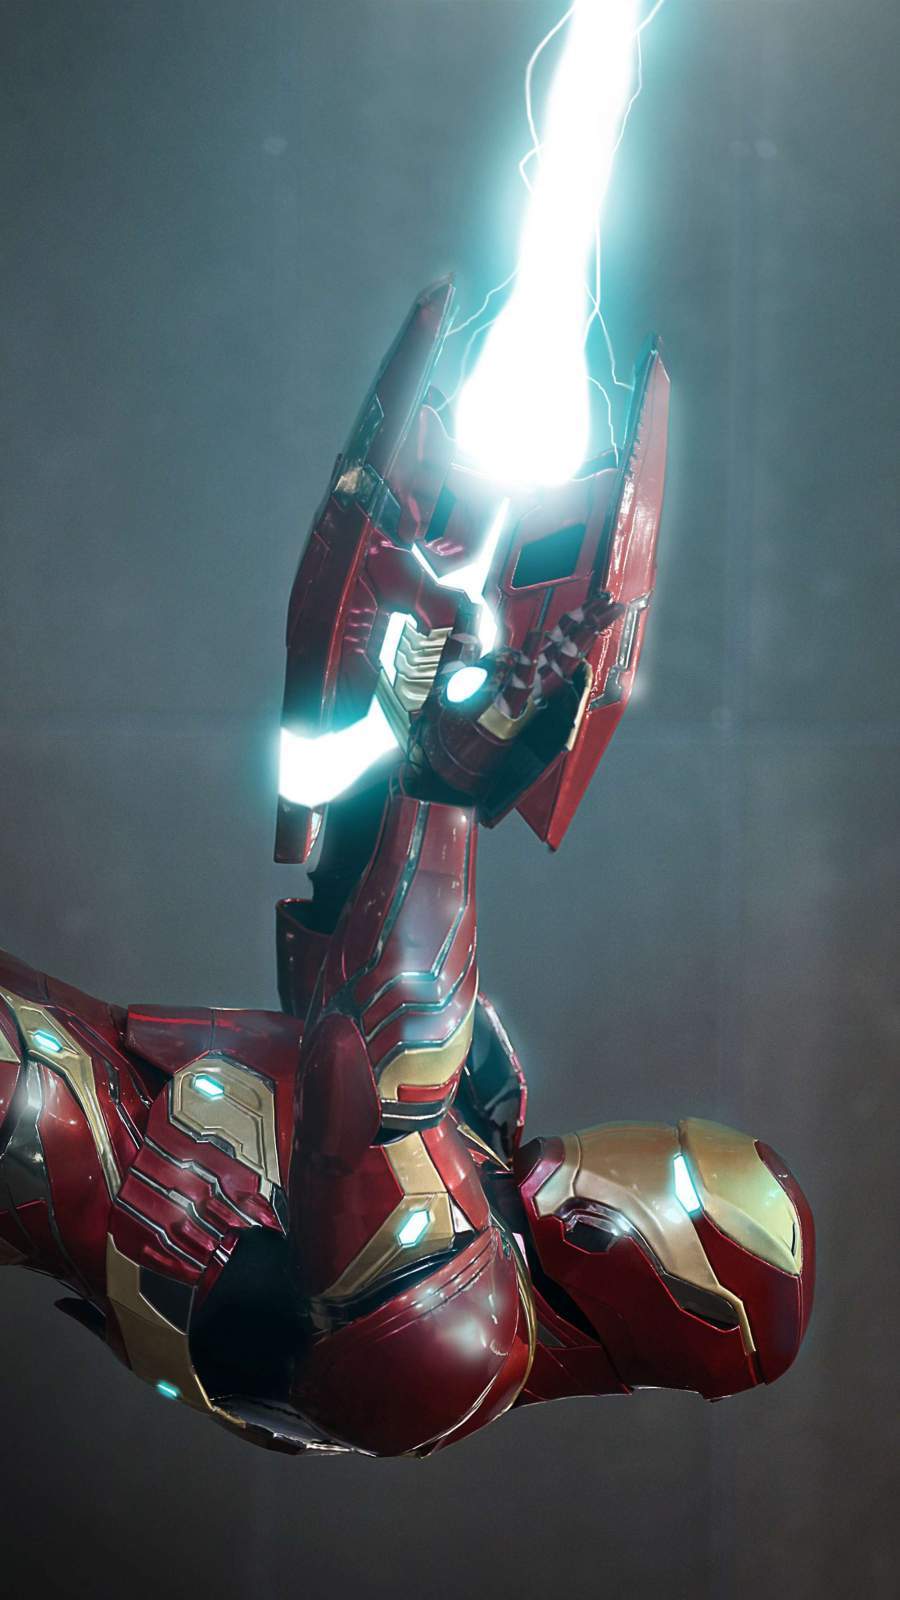 Iron Man Energy Displacer Cannon iPhone Wallpaper